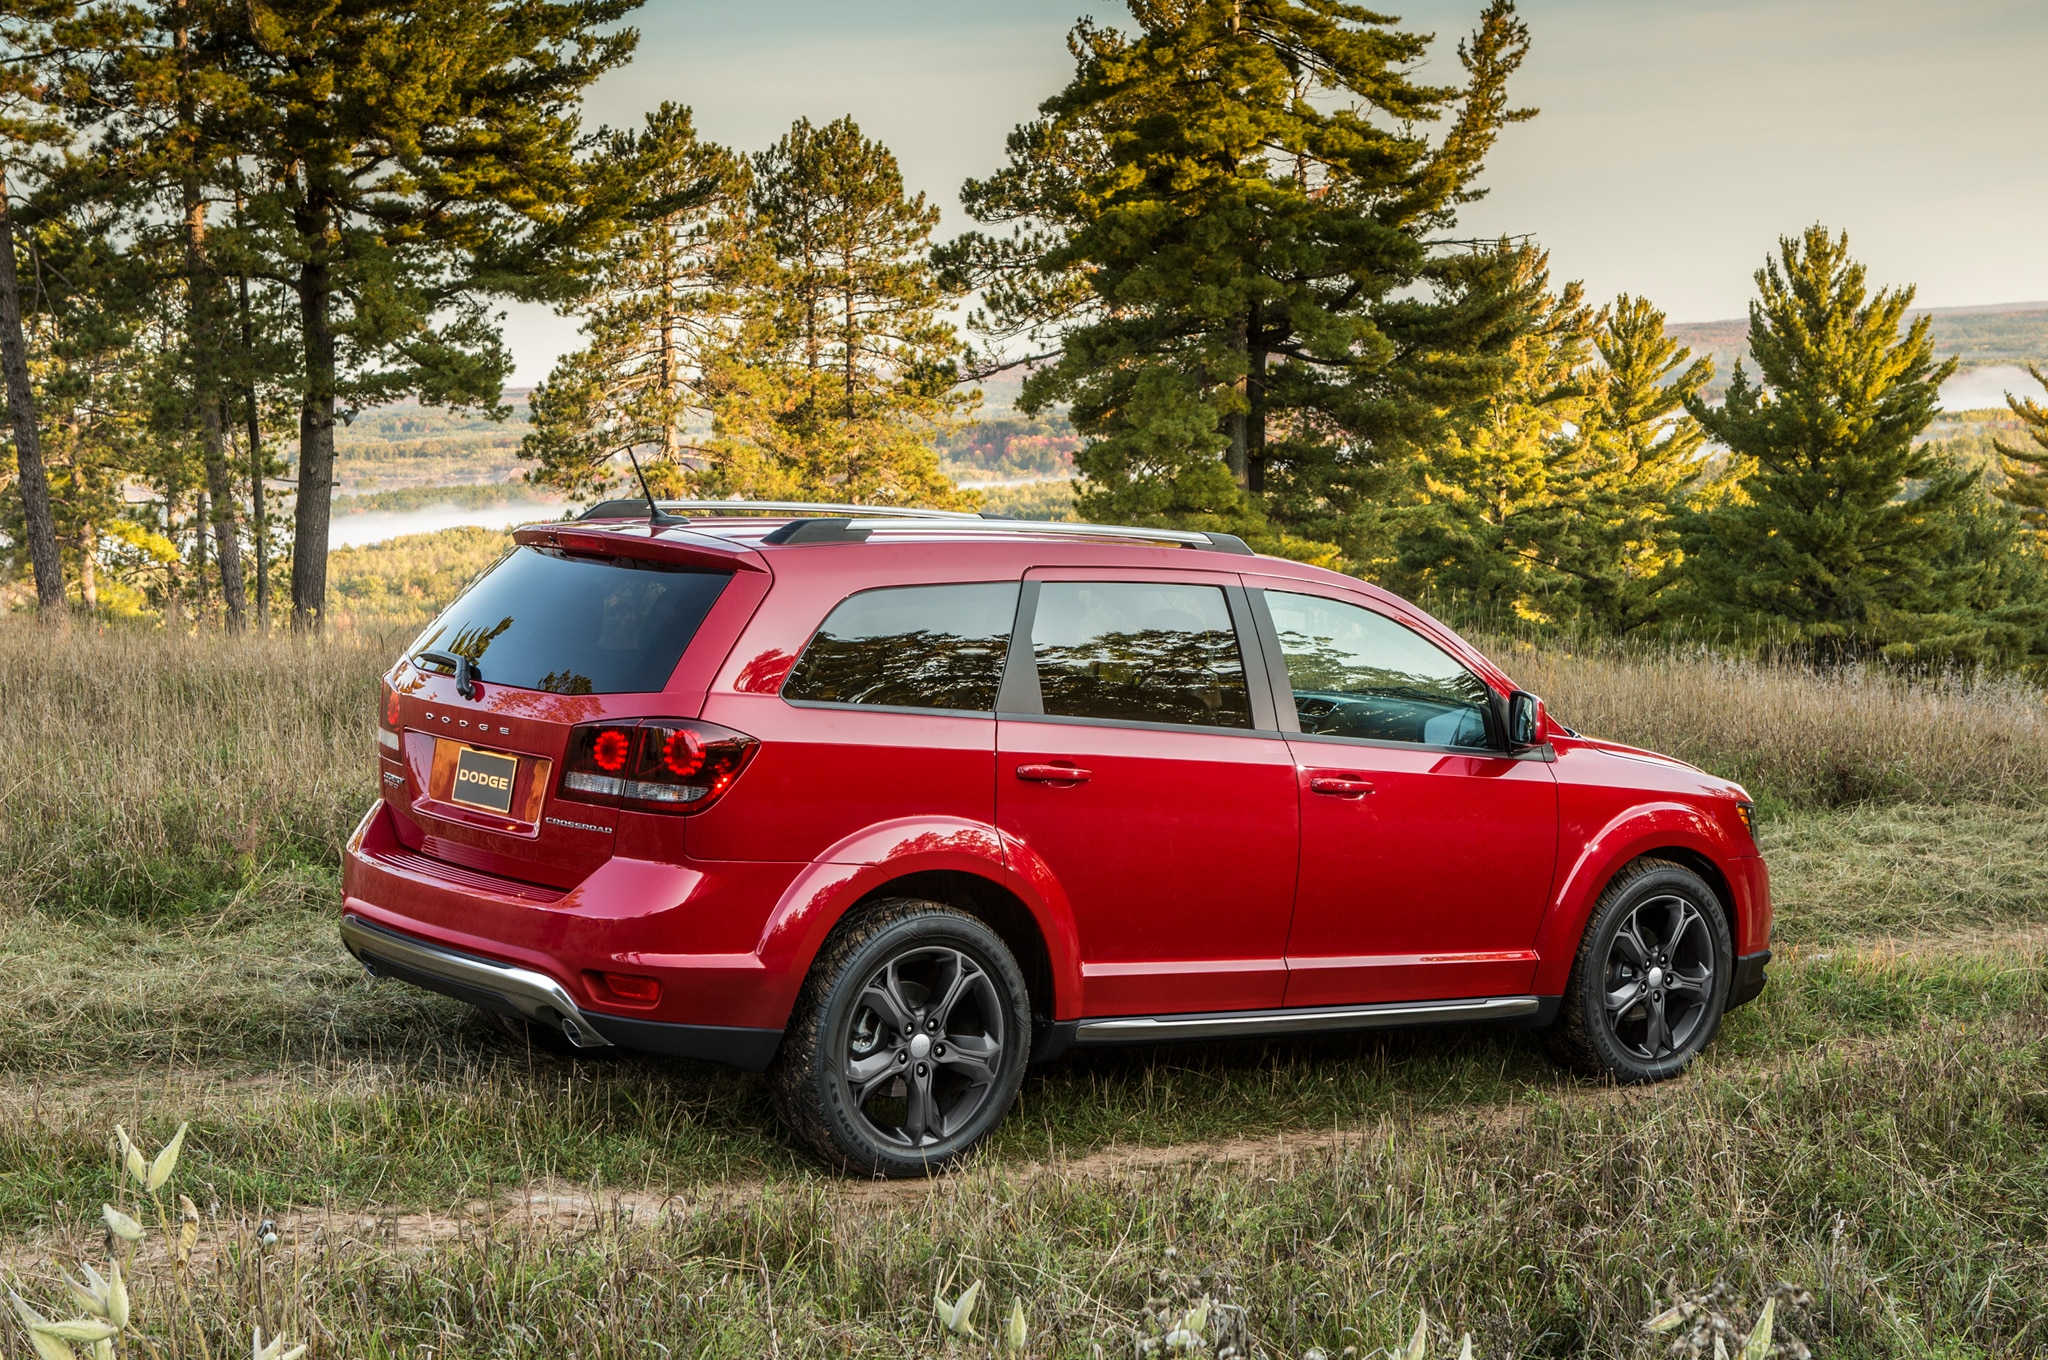 2014 dodge journey se v 6 awd priced at 25 890 automobile magazine. Black Bedroom Furniture Sets. Home Design Ideas